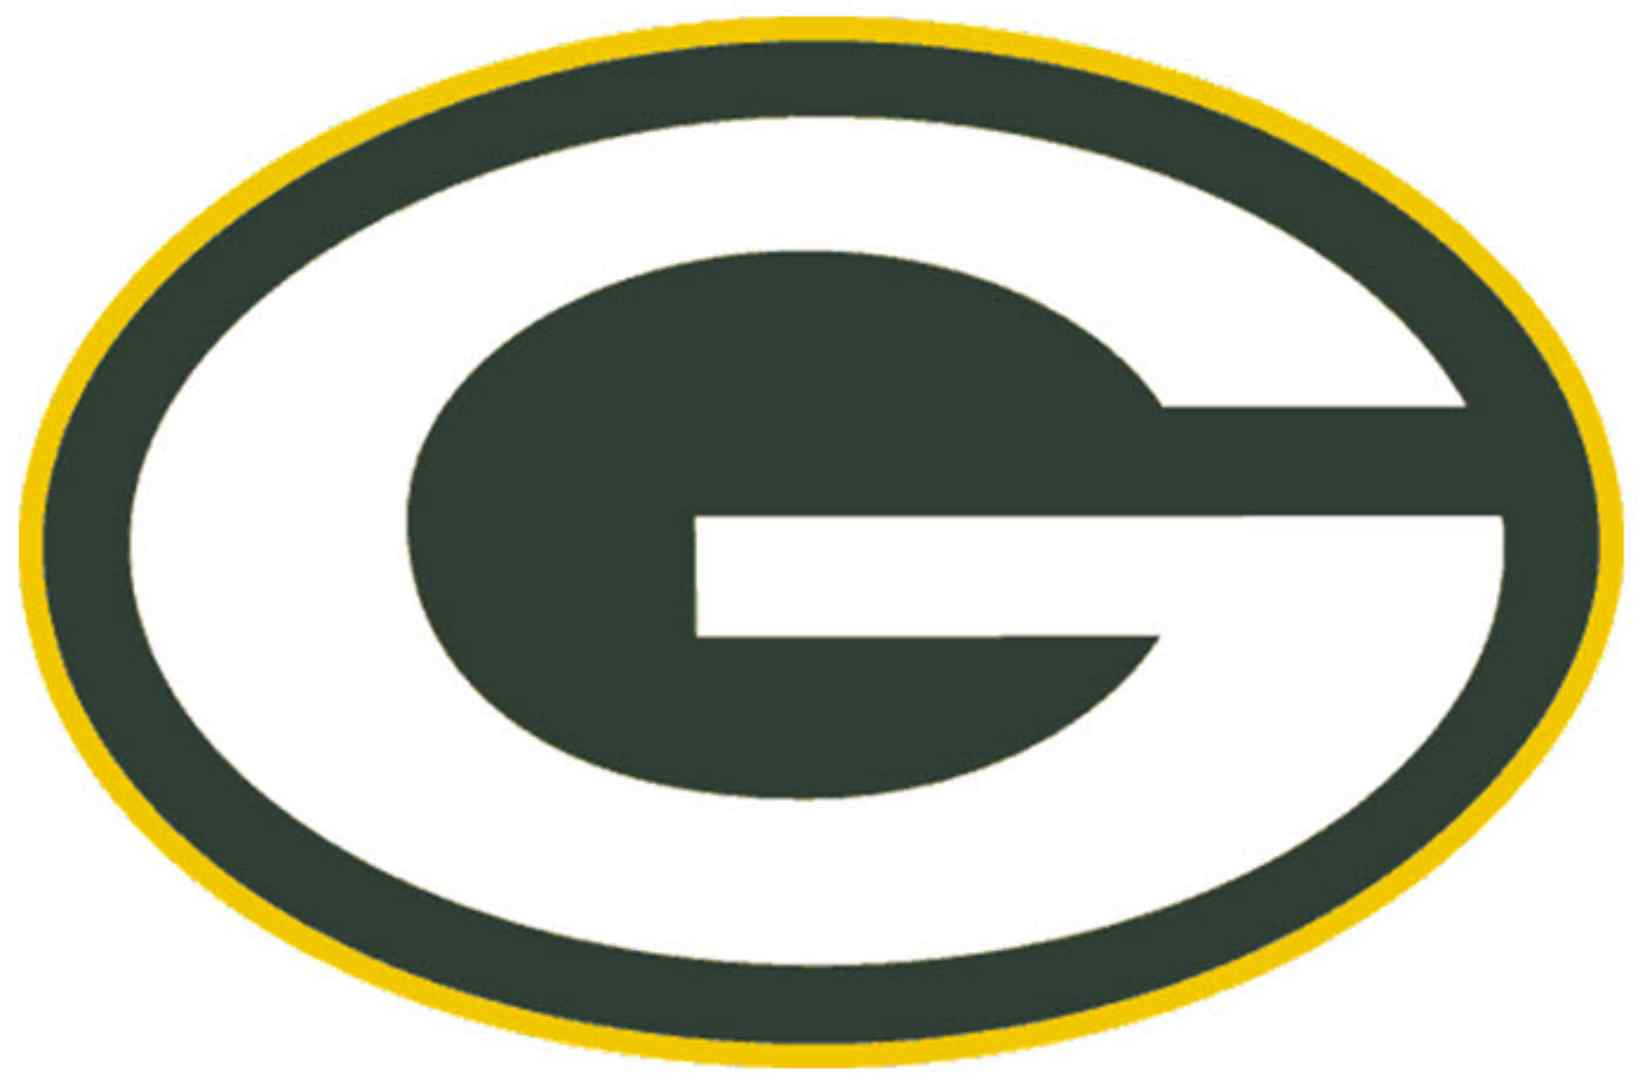 clip art for green bay packers - photo #19